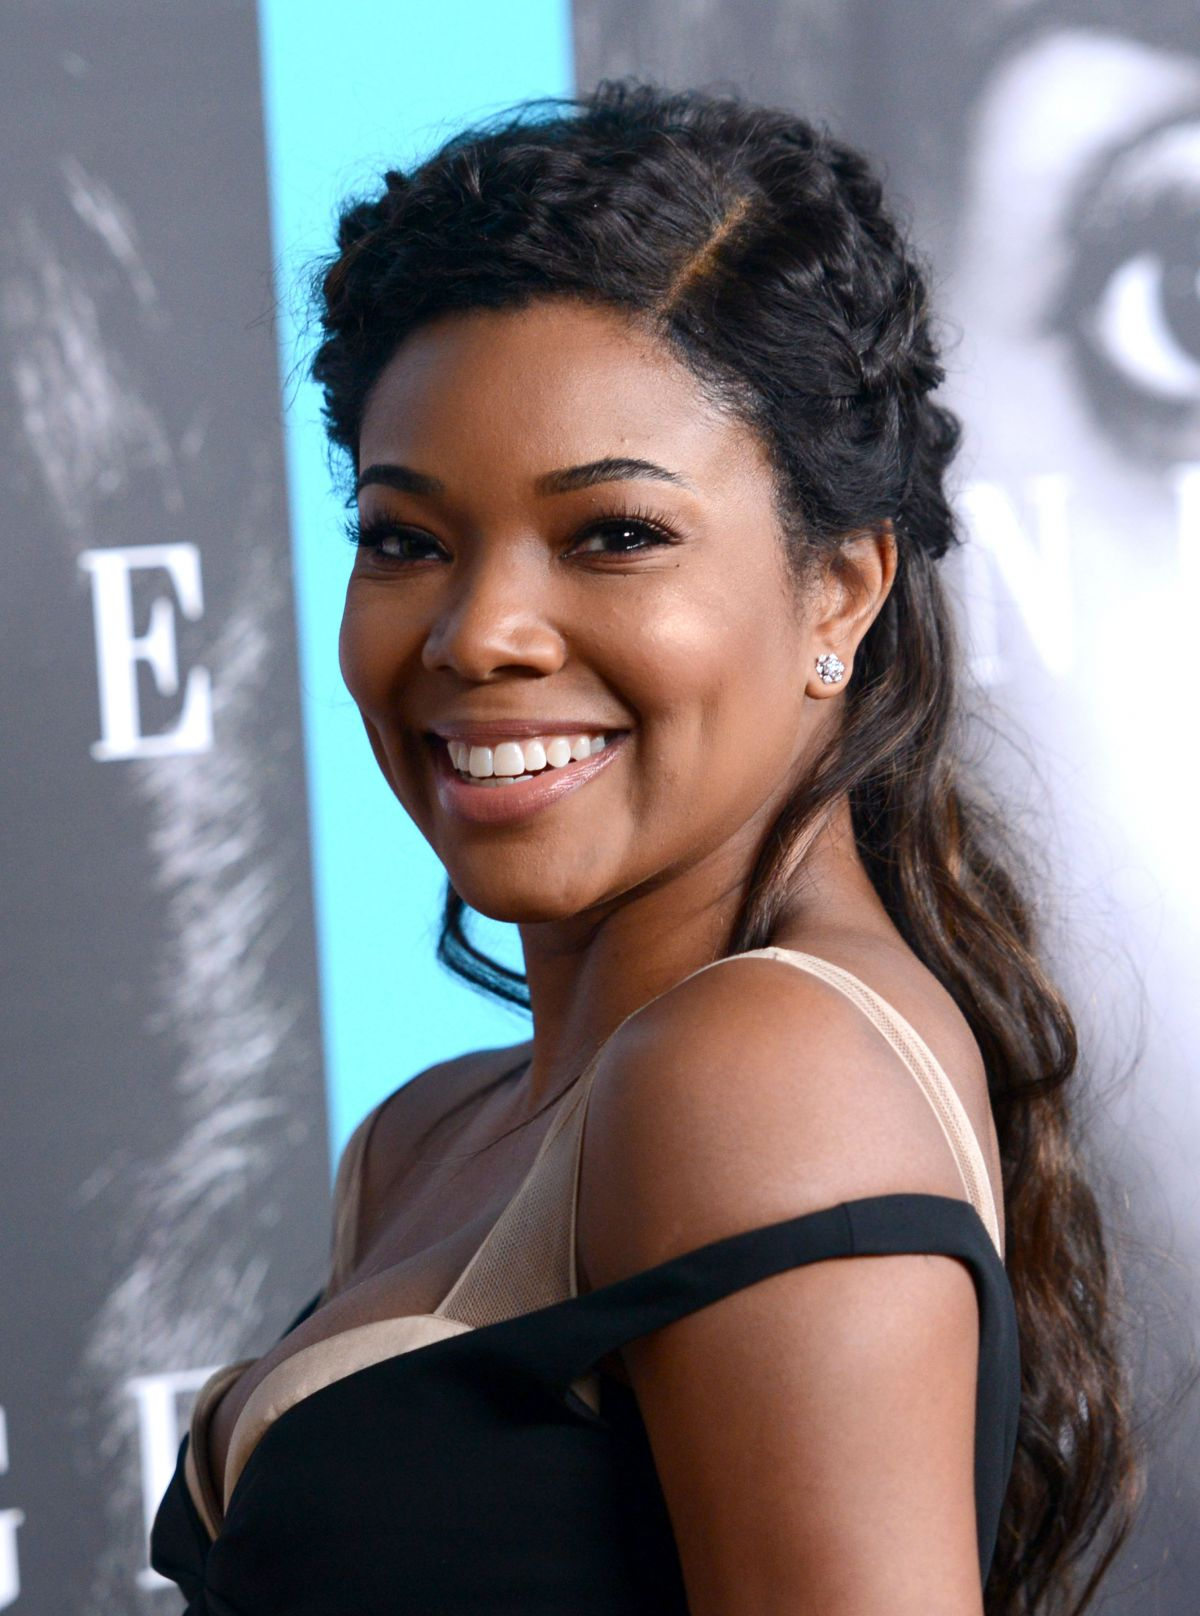 gabrielle-union-at-confirmation-premiere-at-paramount-studios-in-la_5